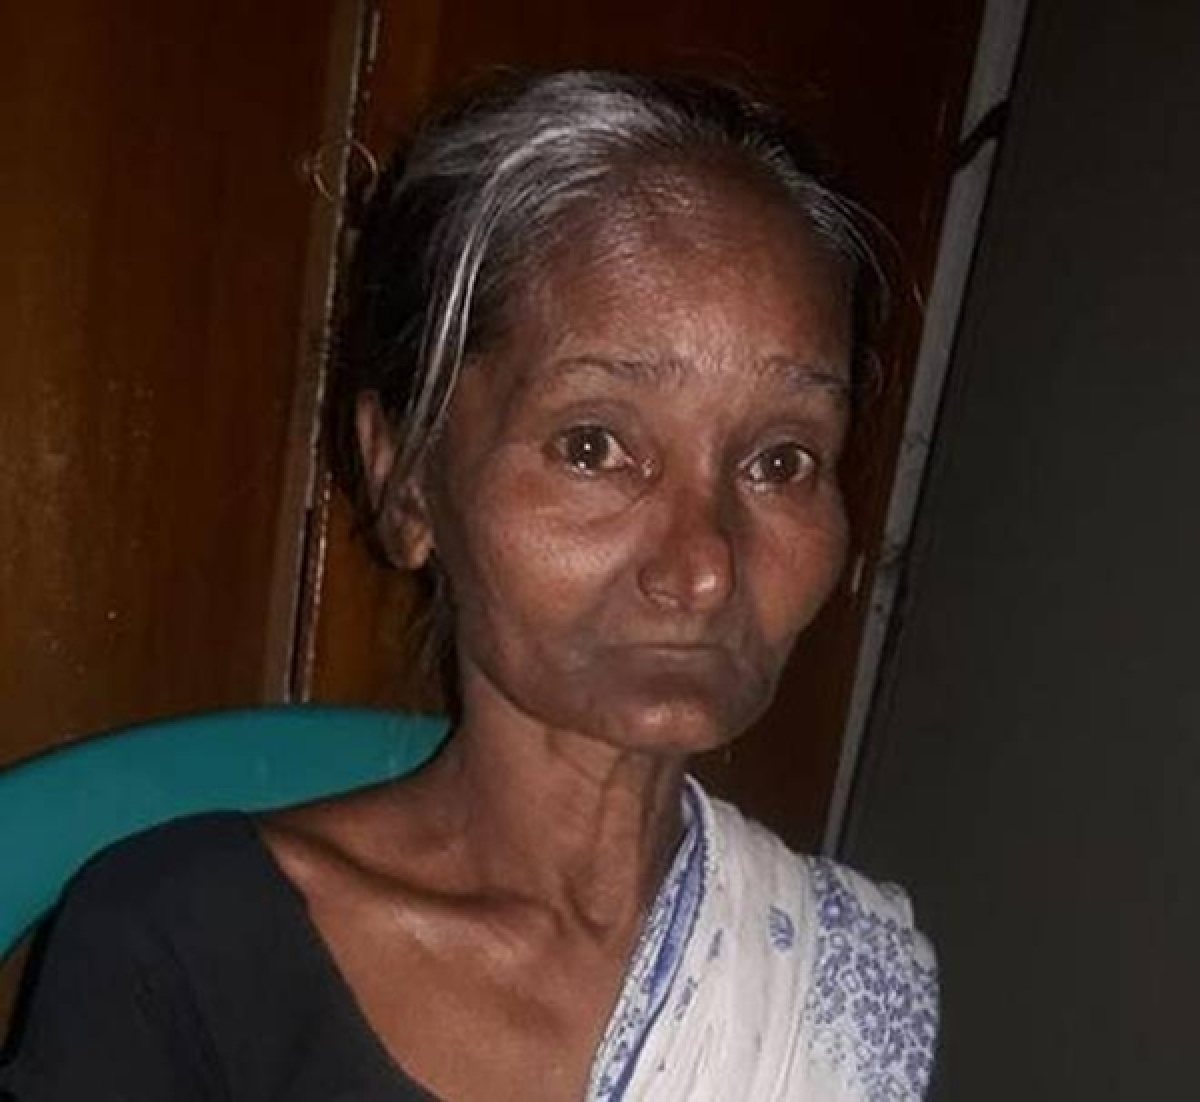 Mistaken identity: Assam woman freed from detention after 3 years